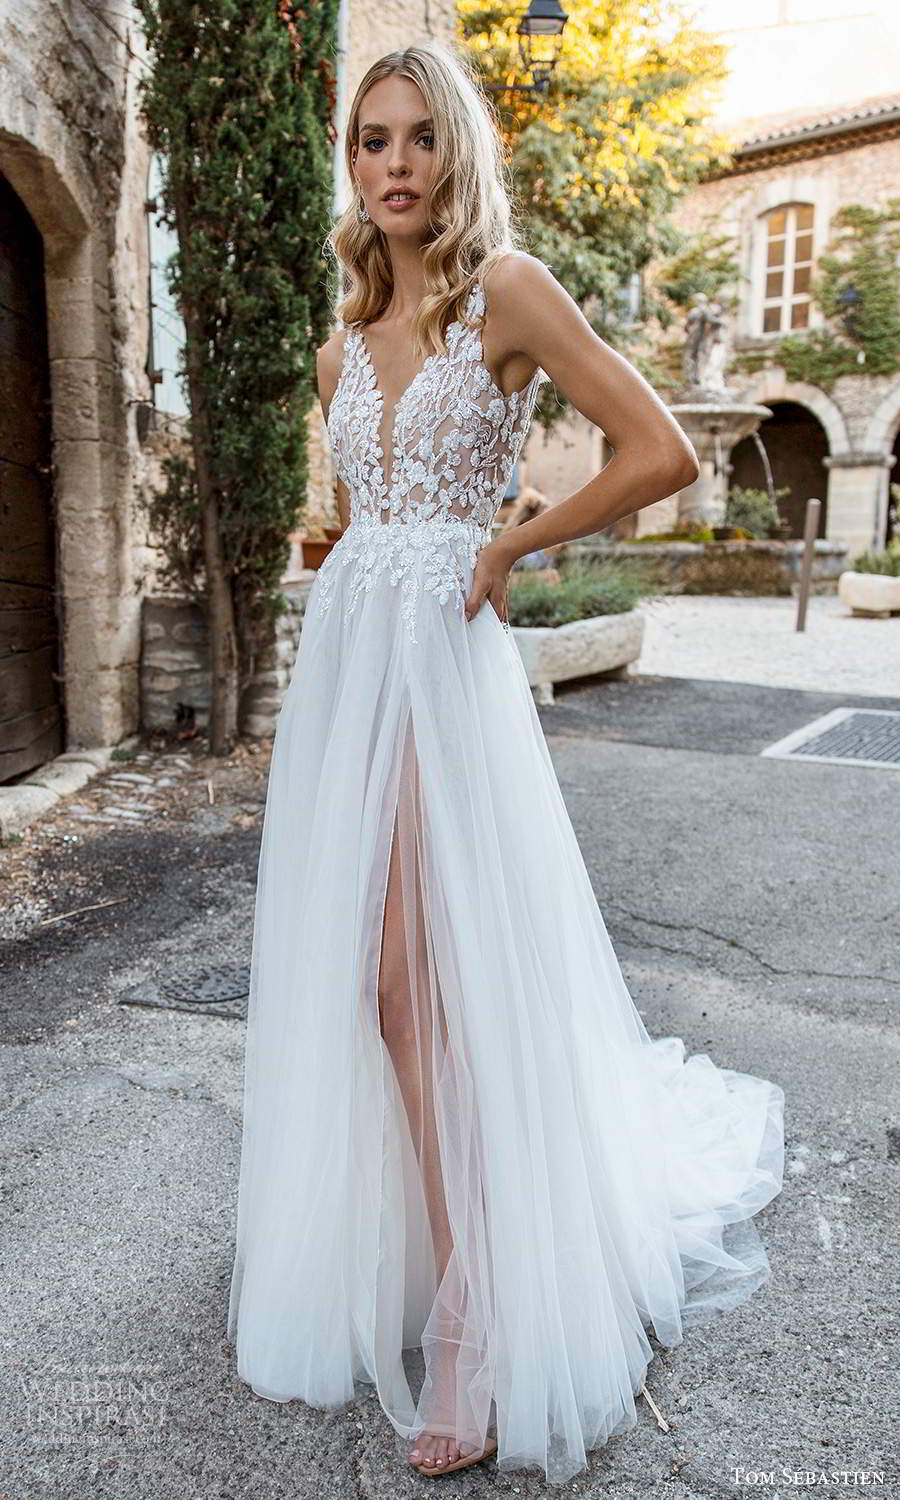 tom sebastien 2021 bridal provence sleeveless straps plunging v neckline embellished bodice a line ball gown wedding dress chapel train slit skirt (11) fv